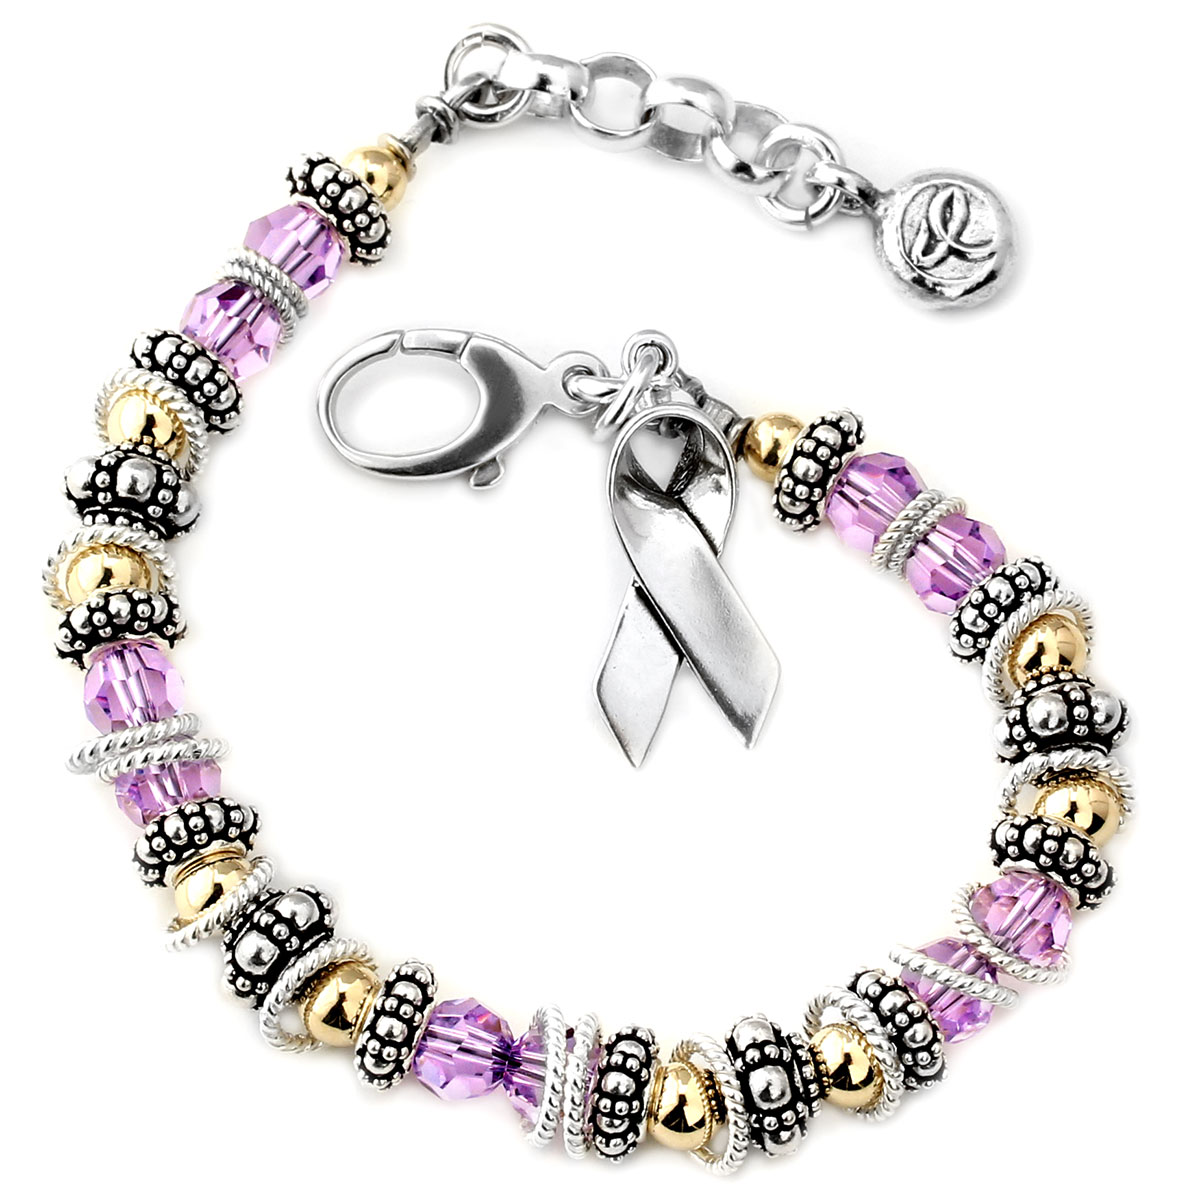 awareness alzheimers support bracelet cancer cystic testicular purple pin ribon